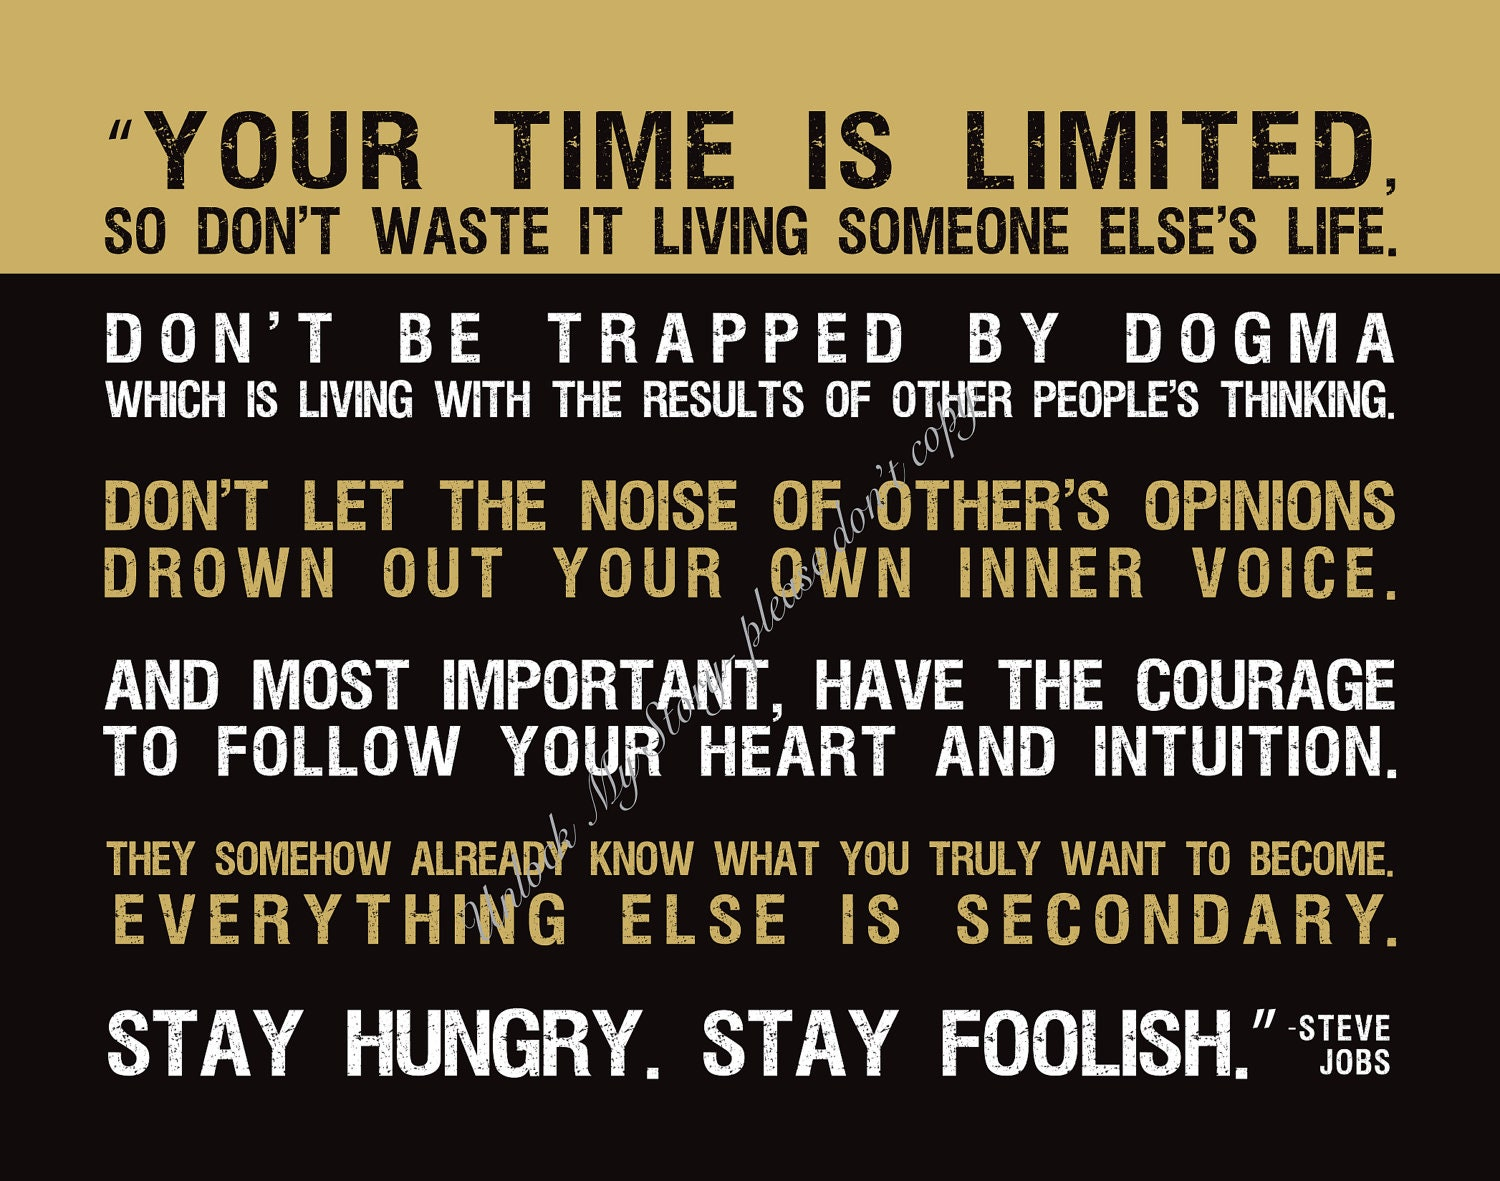 your time is limited steve jobs quote custom 11 x 14 canvas